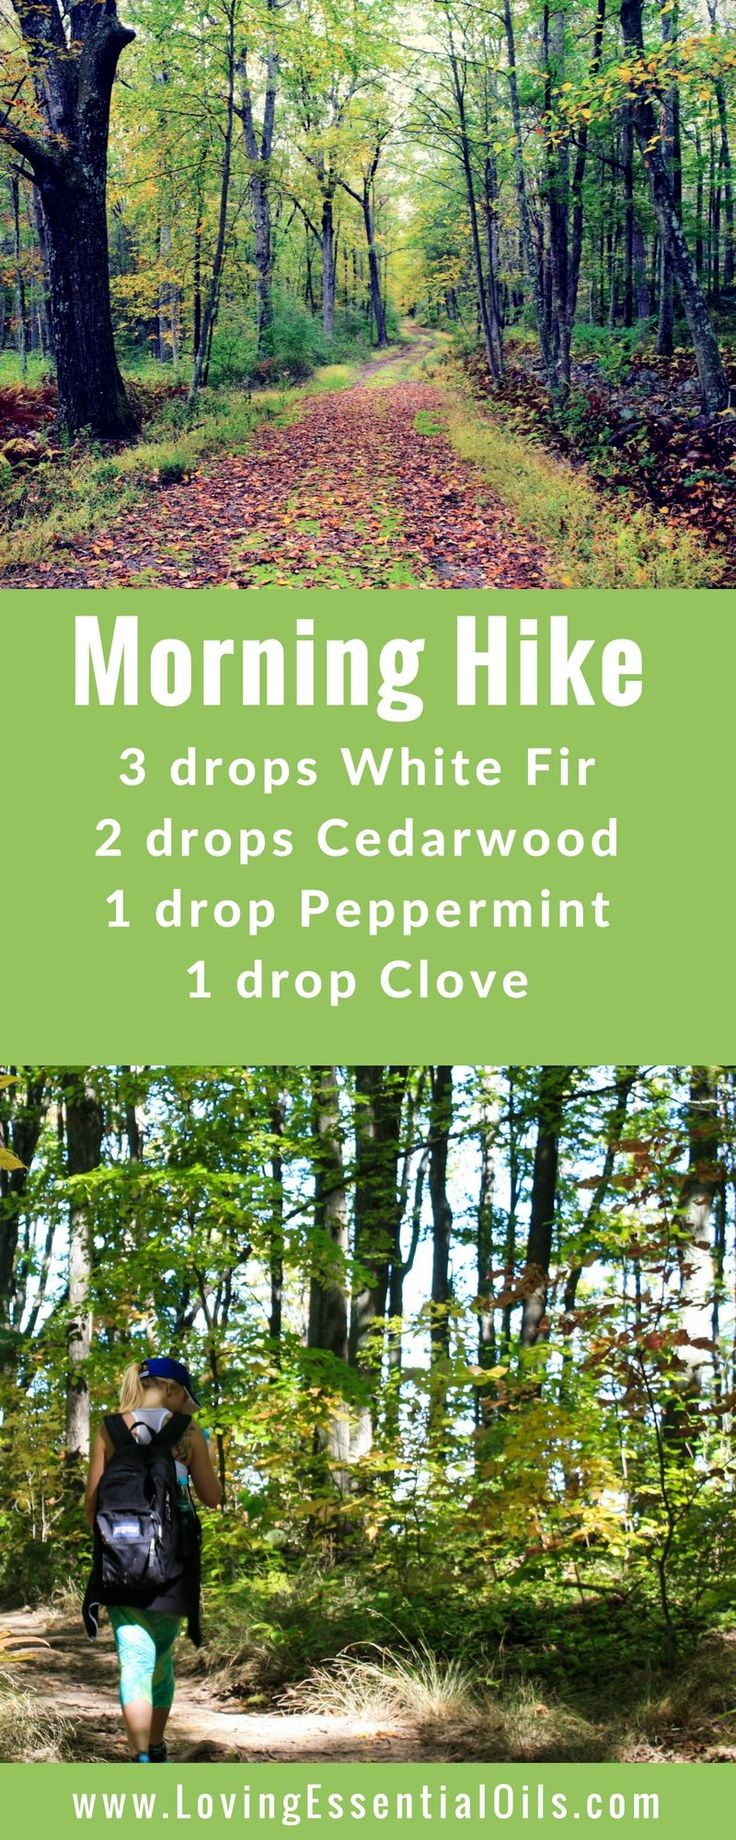 Morning Hike diffuser blend with cedarwood, white fir, clove and peppermint essential oils #diffuser #peppermint #essentialoils